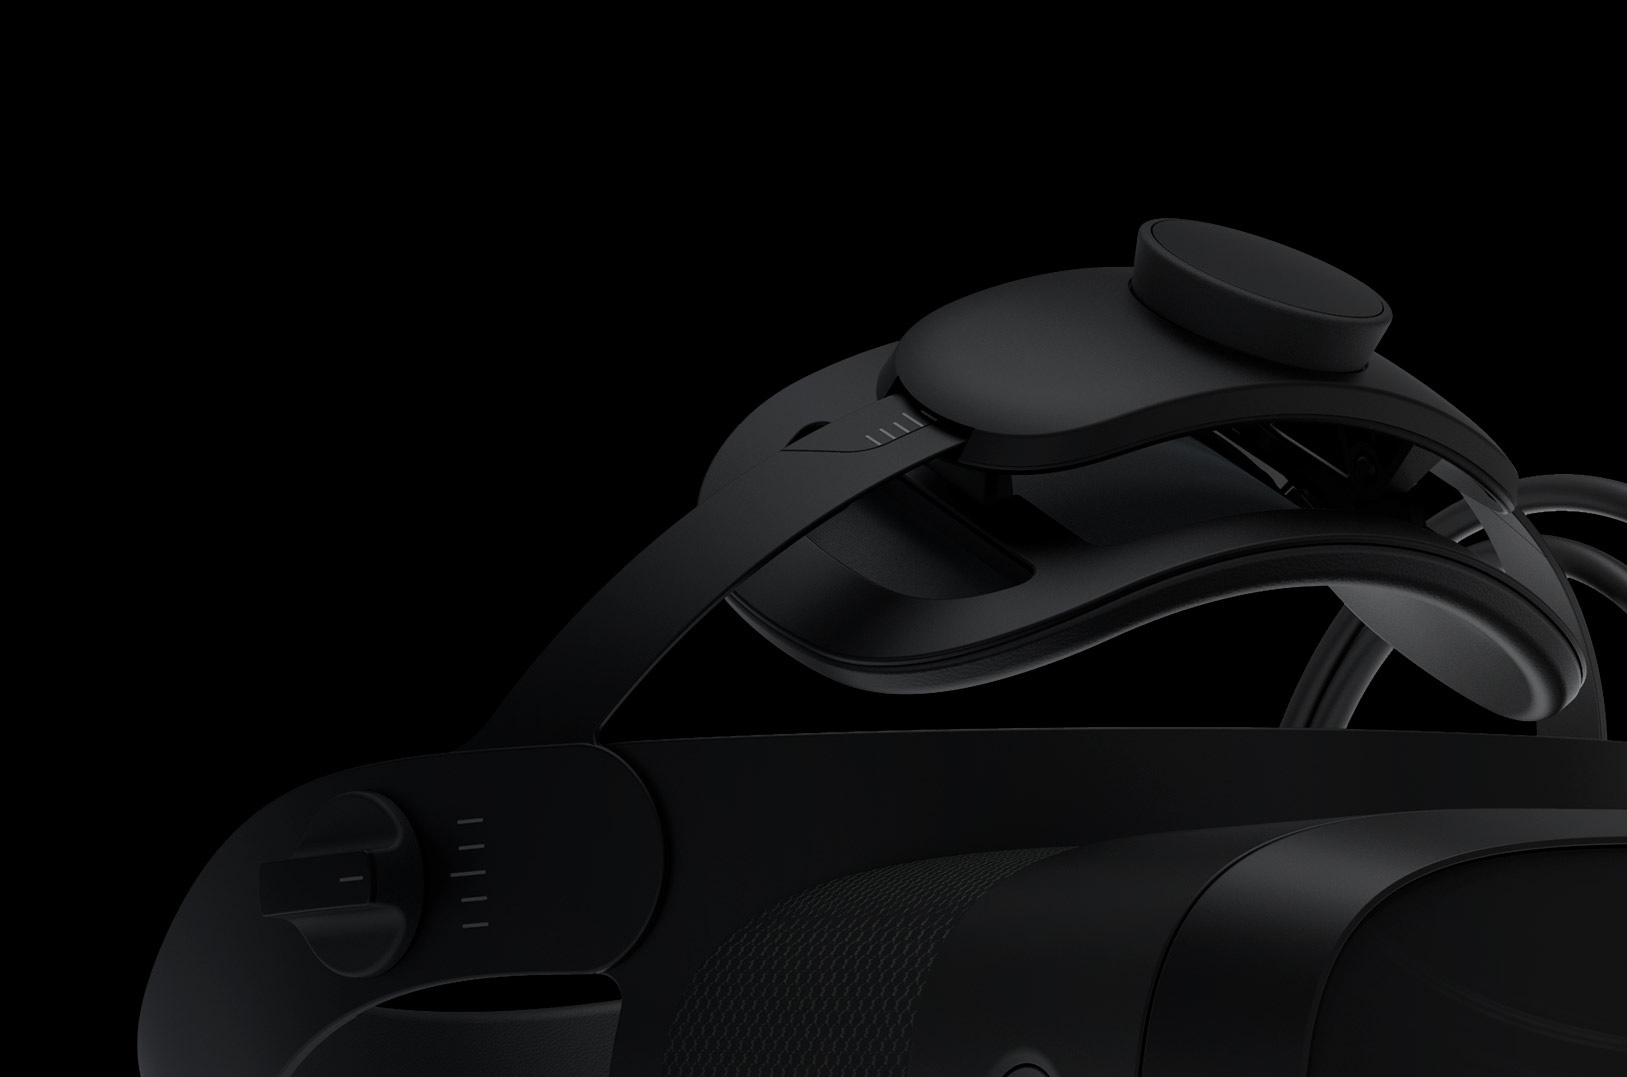 Ultimate comfort for virtual and mixed reality. We have put a lot of effort to further develop the ergonomics of the new headsets in a way that will support wider rollouts of XR/VR and enable multi-hour VR/XR sessions.